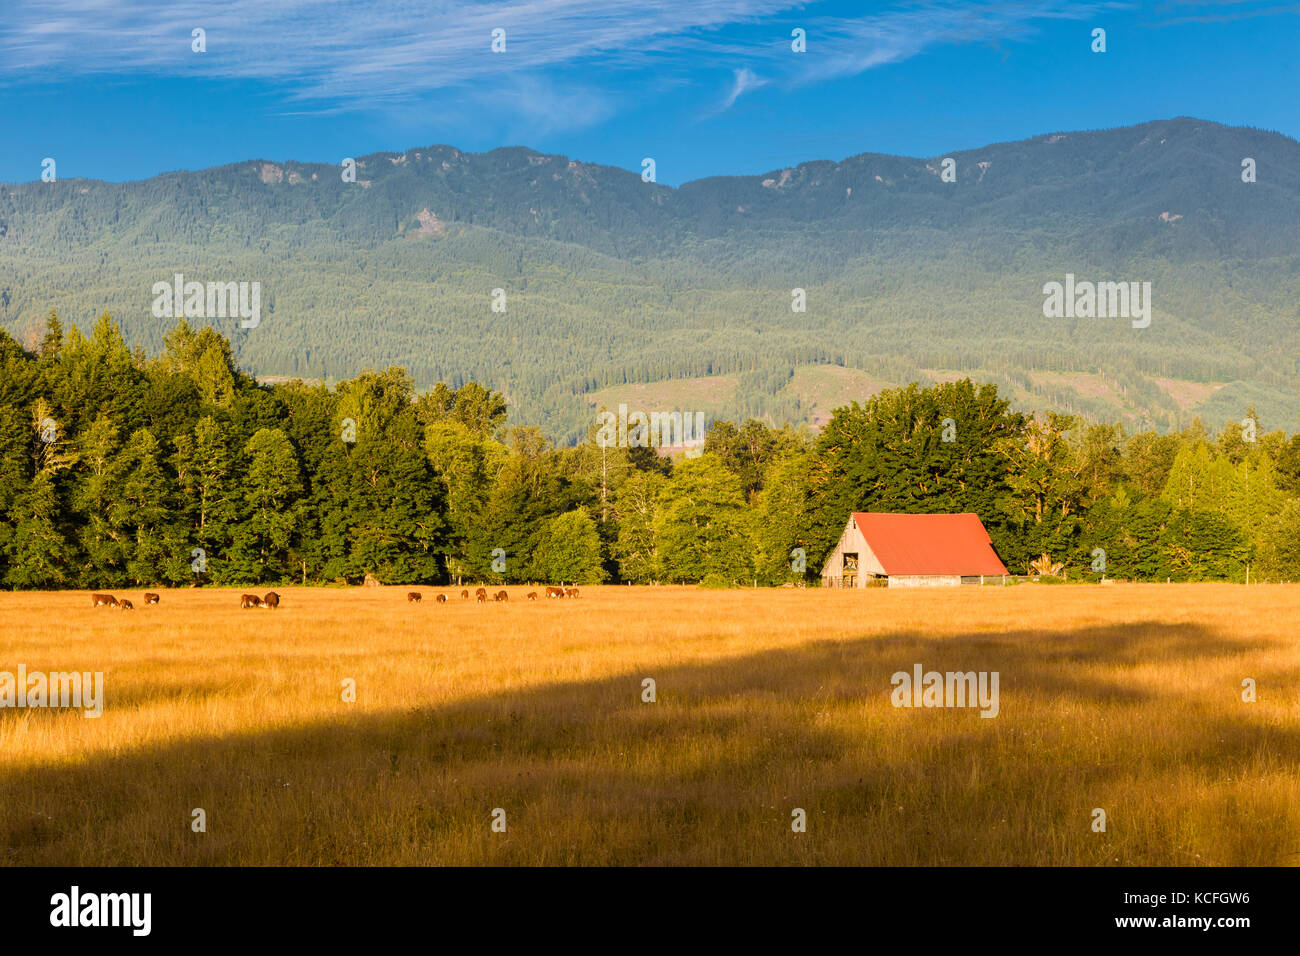 Farm in Cascade Mountains in northern Washington State in the United States - Stock Image